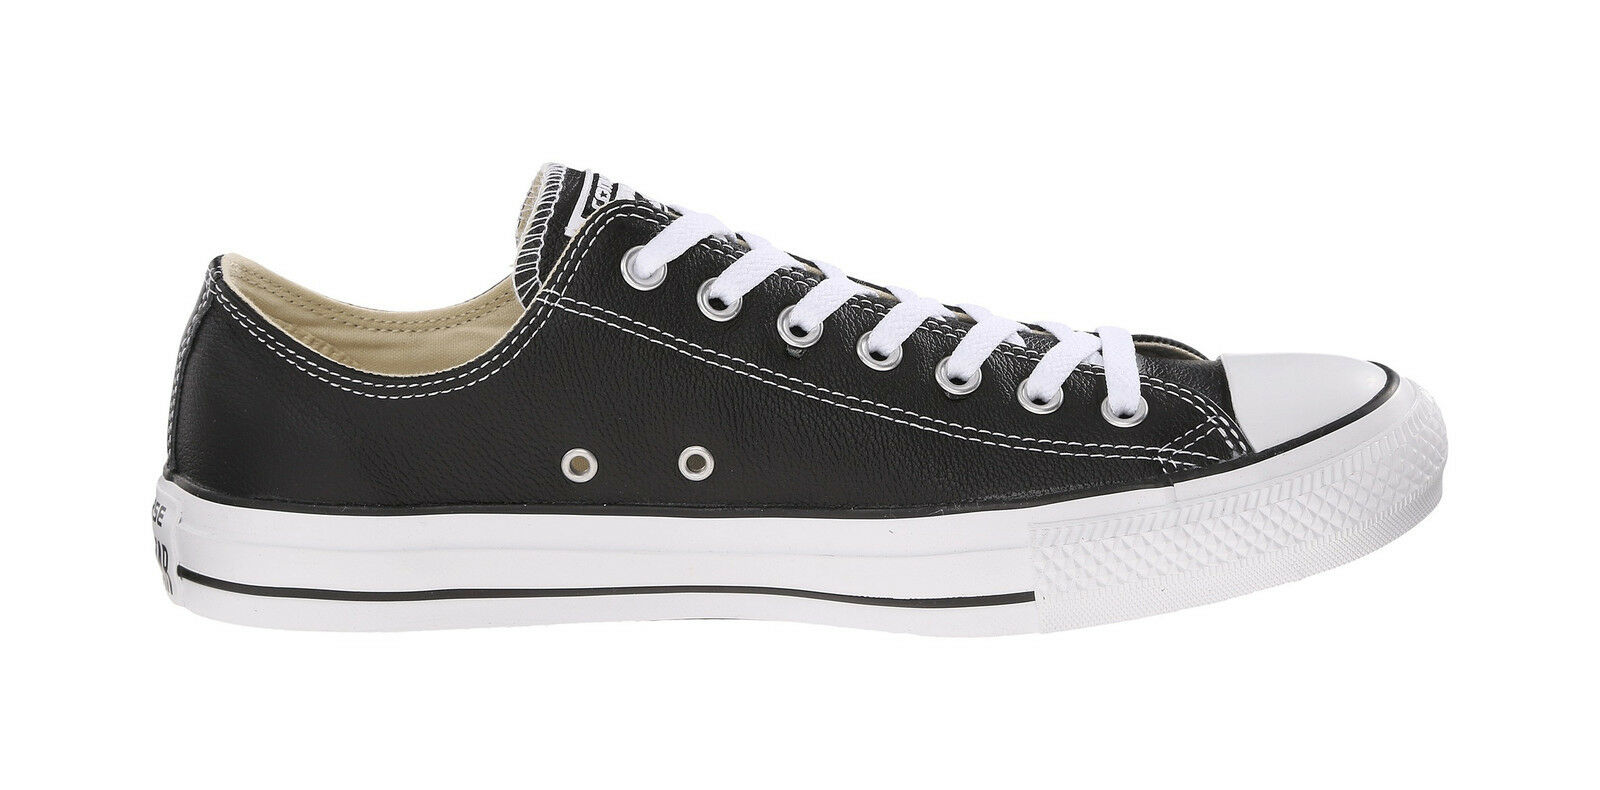 Converse Chaussures Chuck Taylor All Star Low Top Noir Leather Homme Femme Sneakers